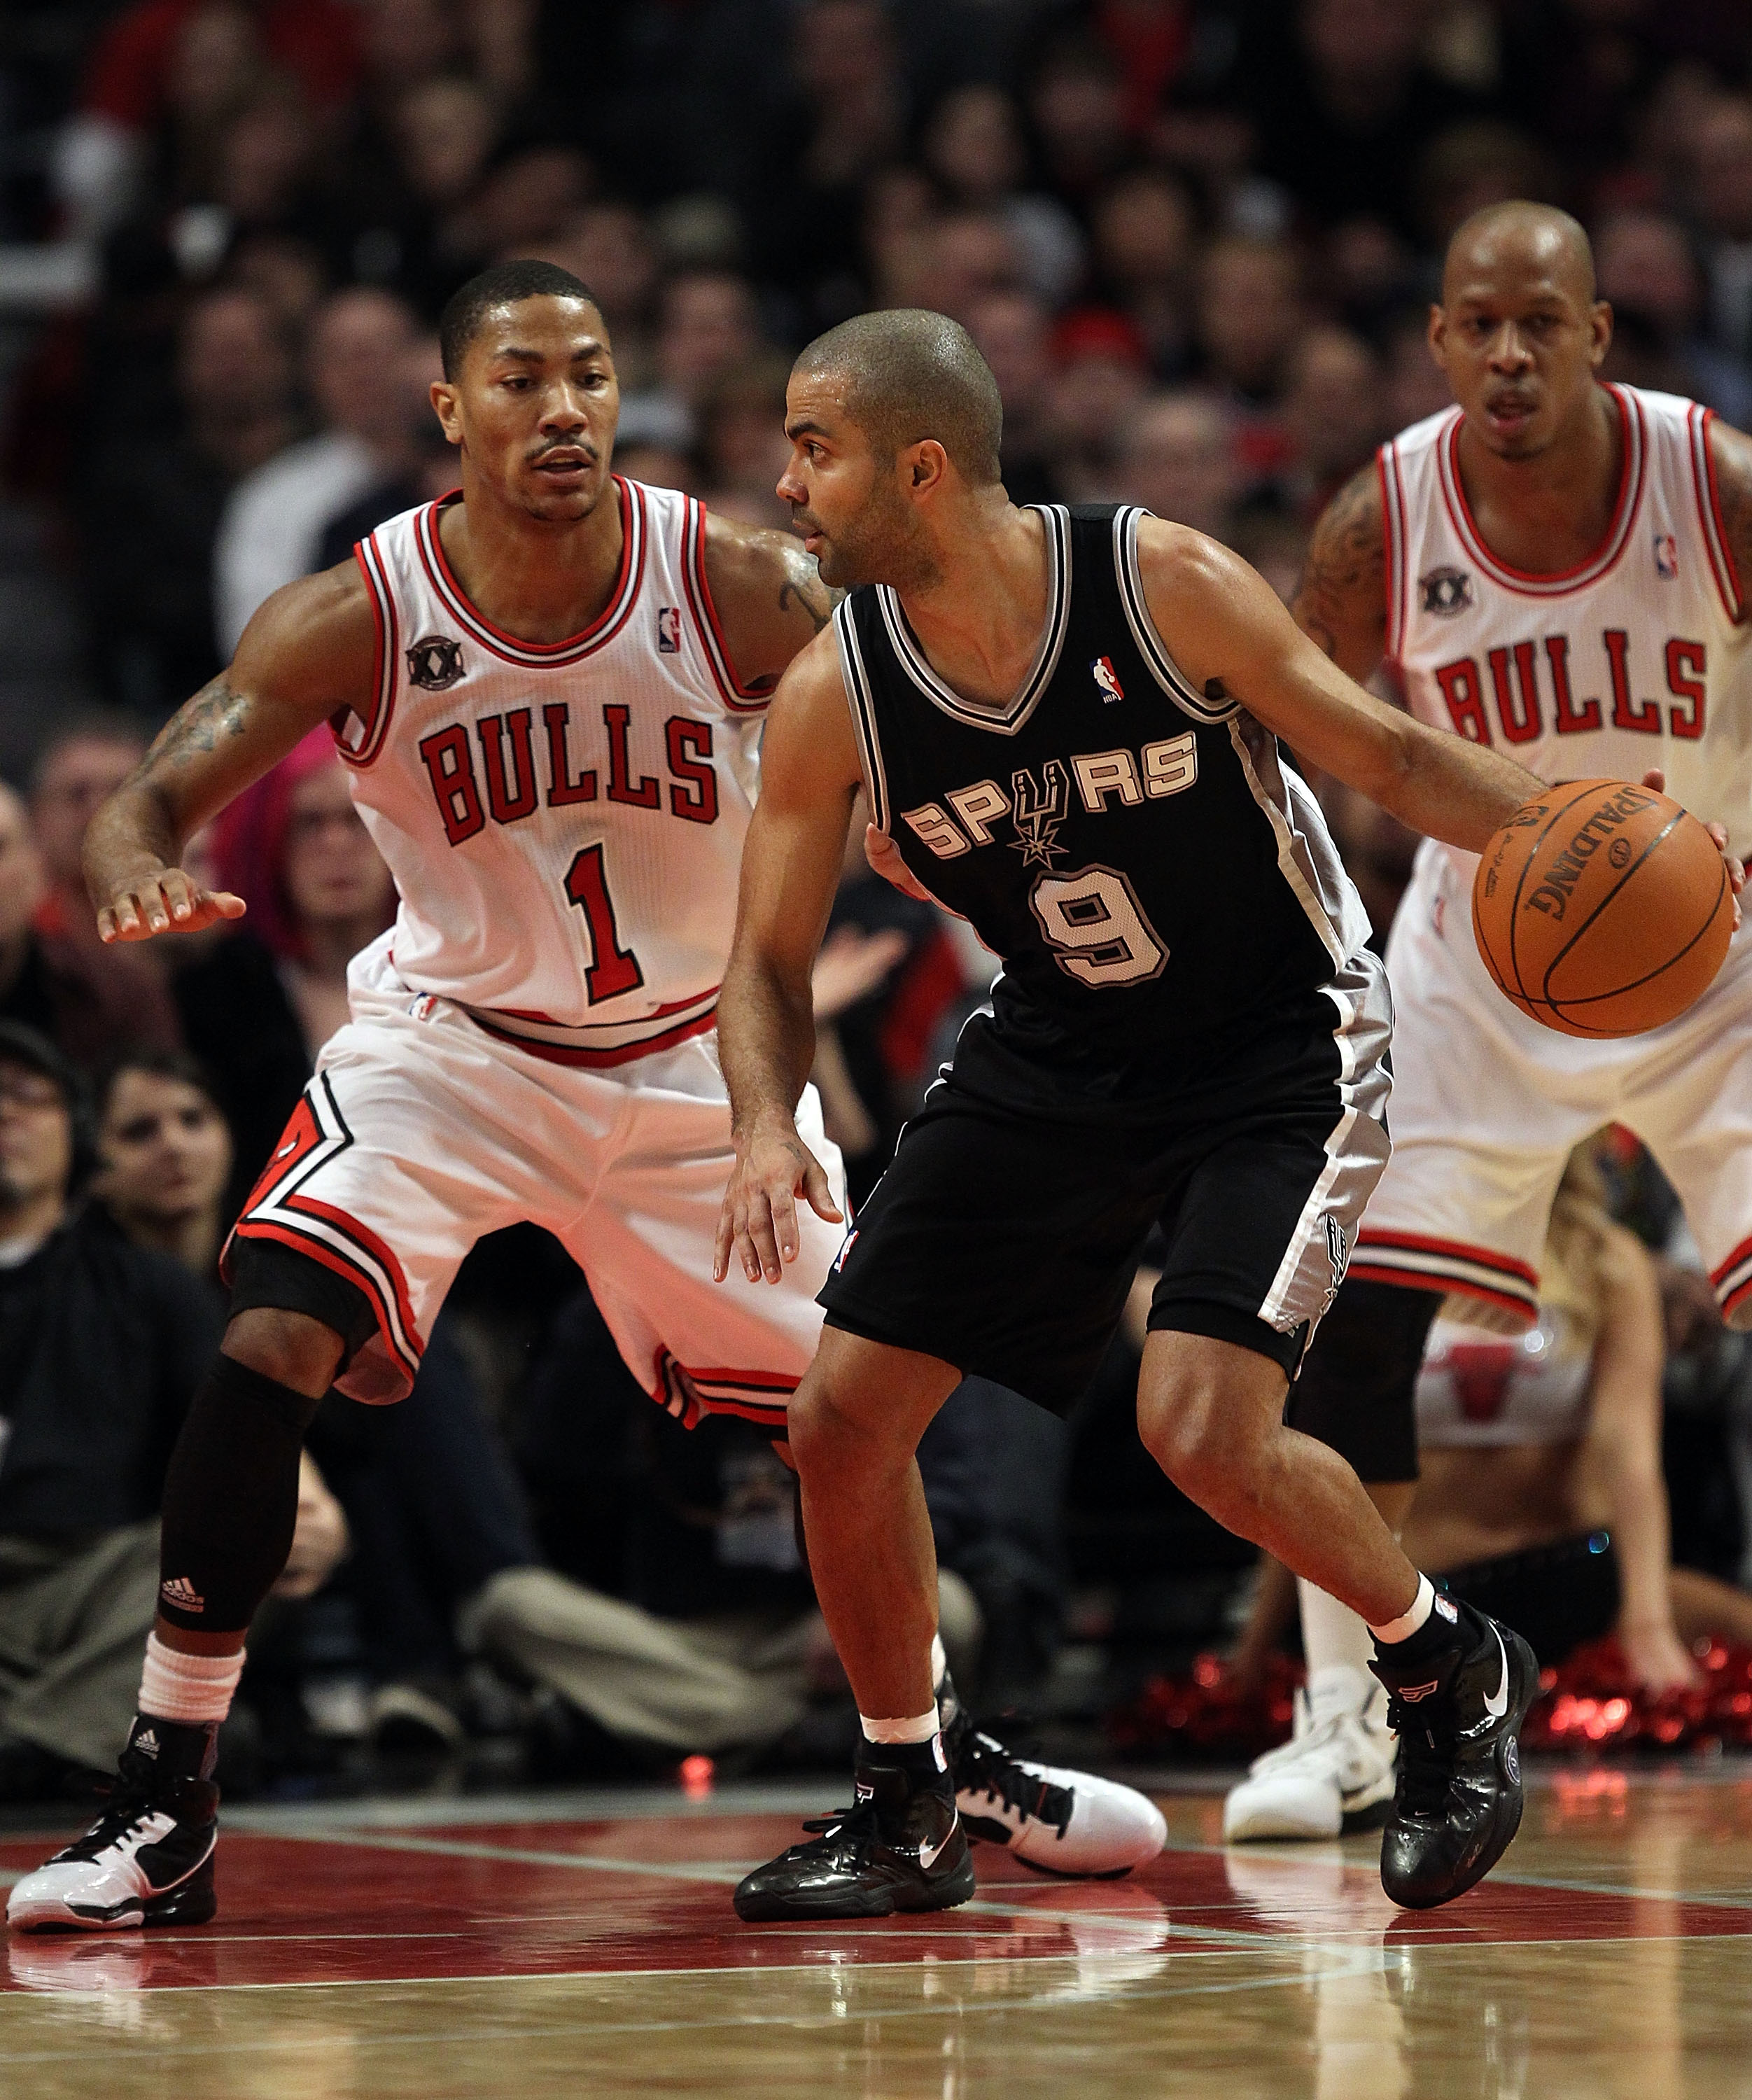 San Antonio and Chicago are both vying for a championship this season.